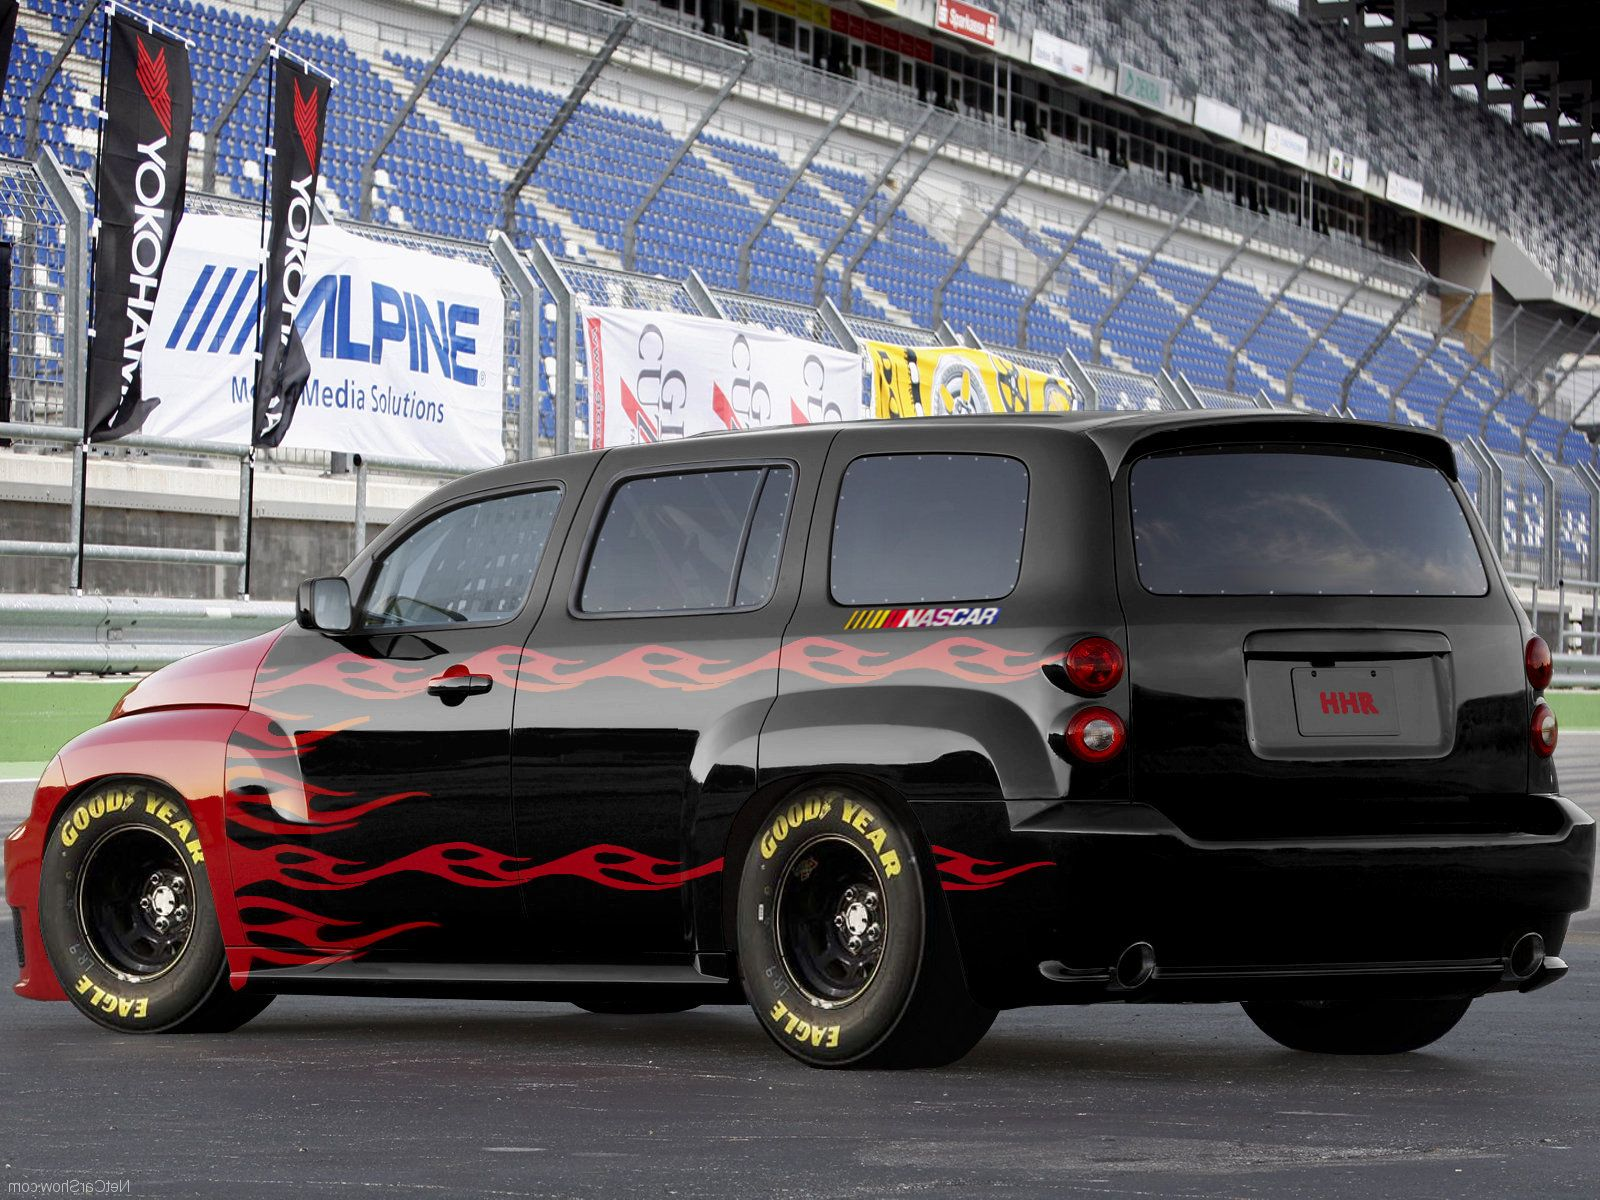 Nice Hhr Would Be Better Minus The Flames Tho Chevy Hhr